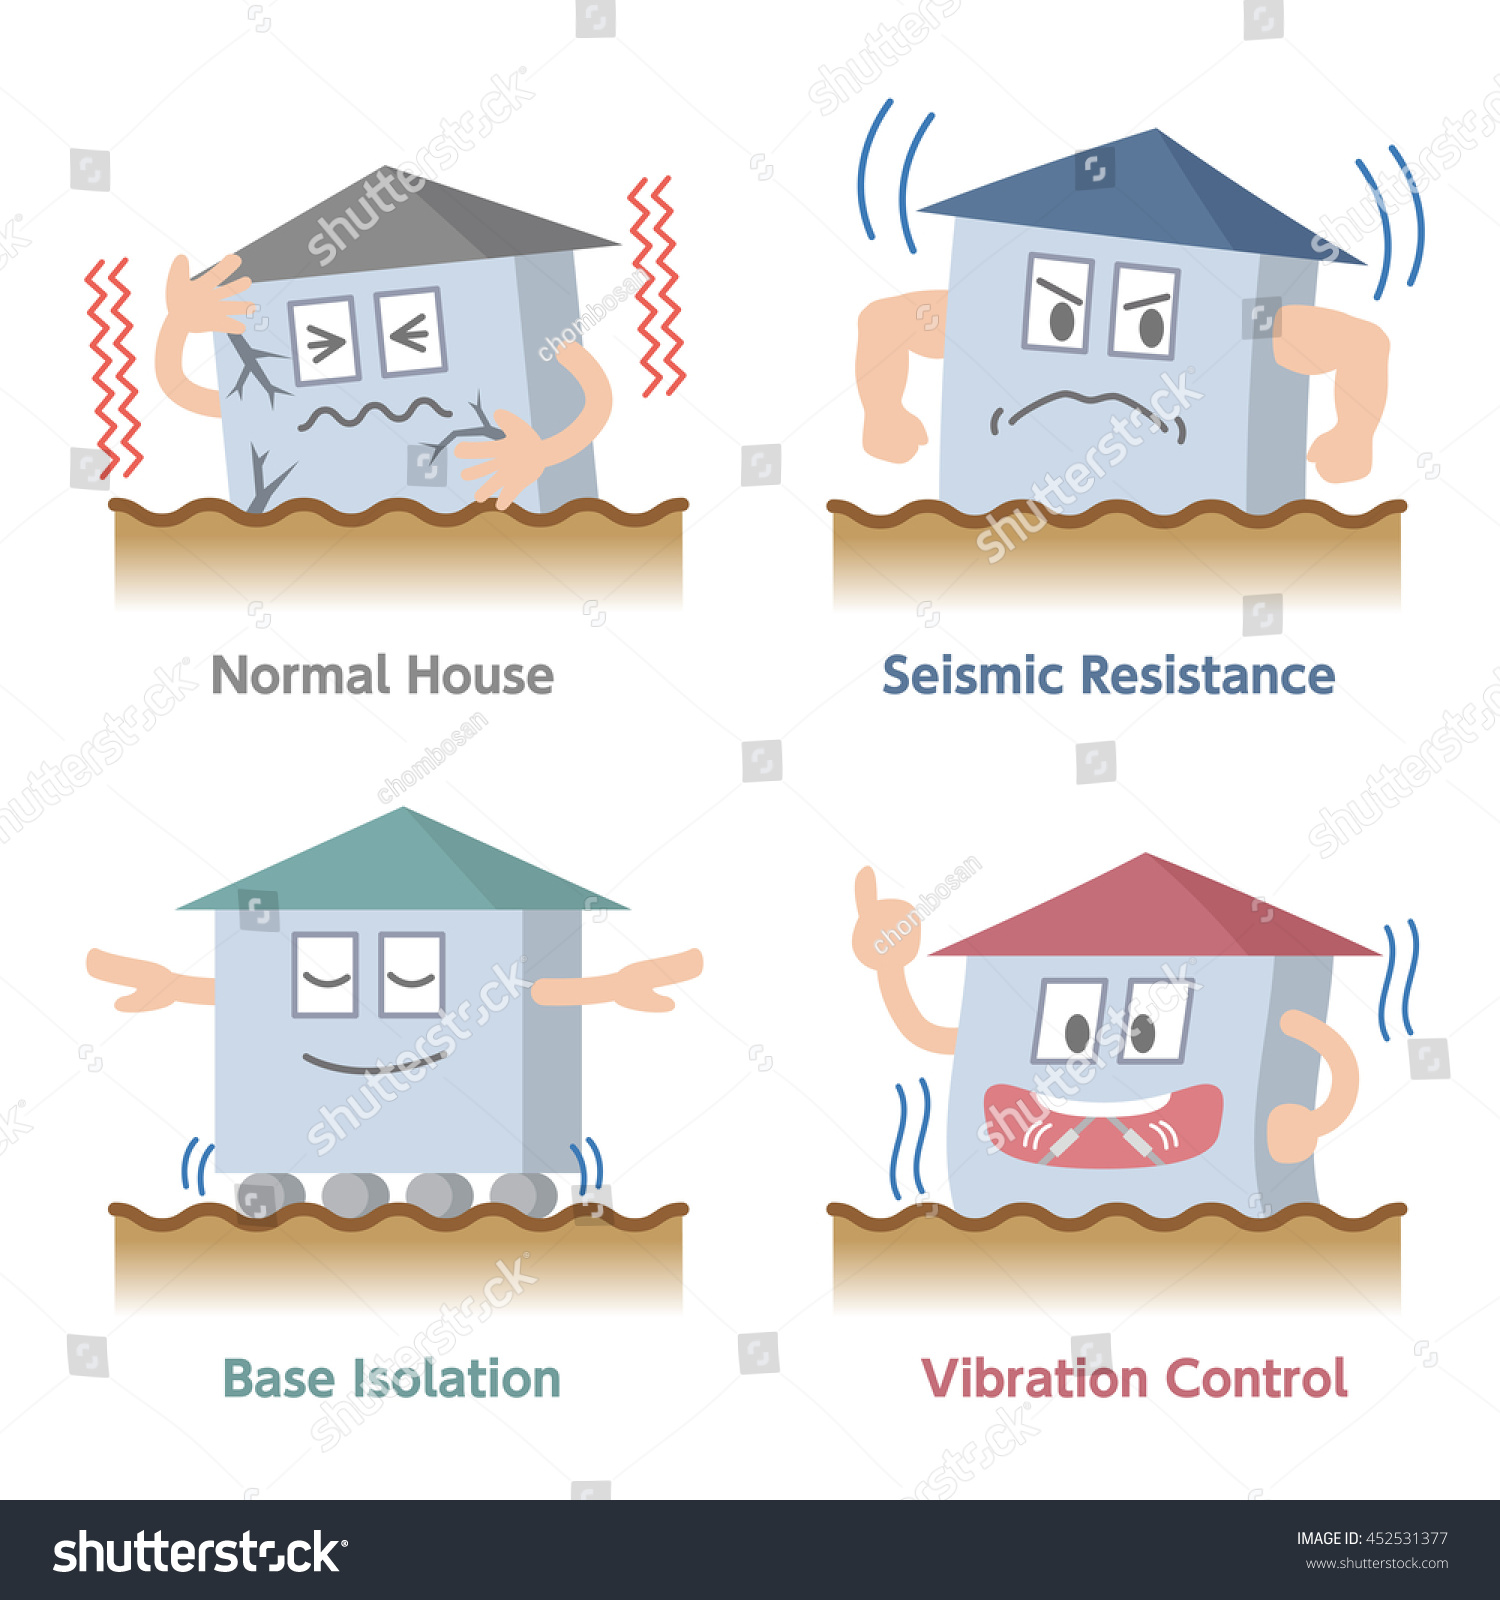 House design earthquake proof - Earthquake Resistant Structure Contrast Cartoon Character Set Normal Building Seismic Resistance Vibration